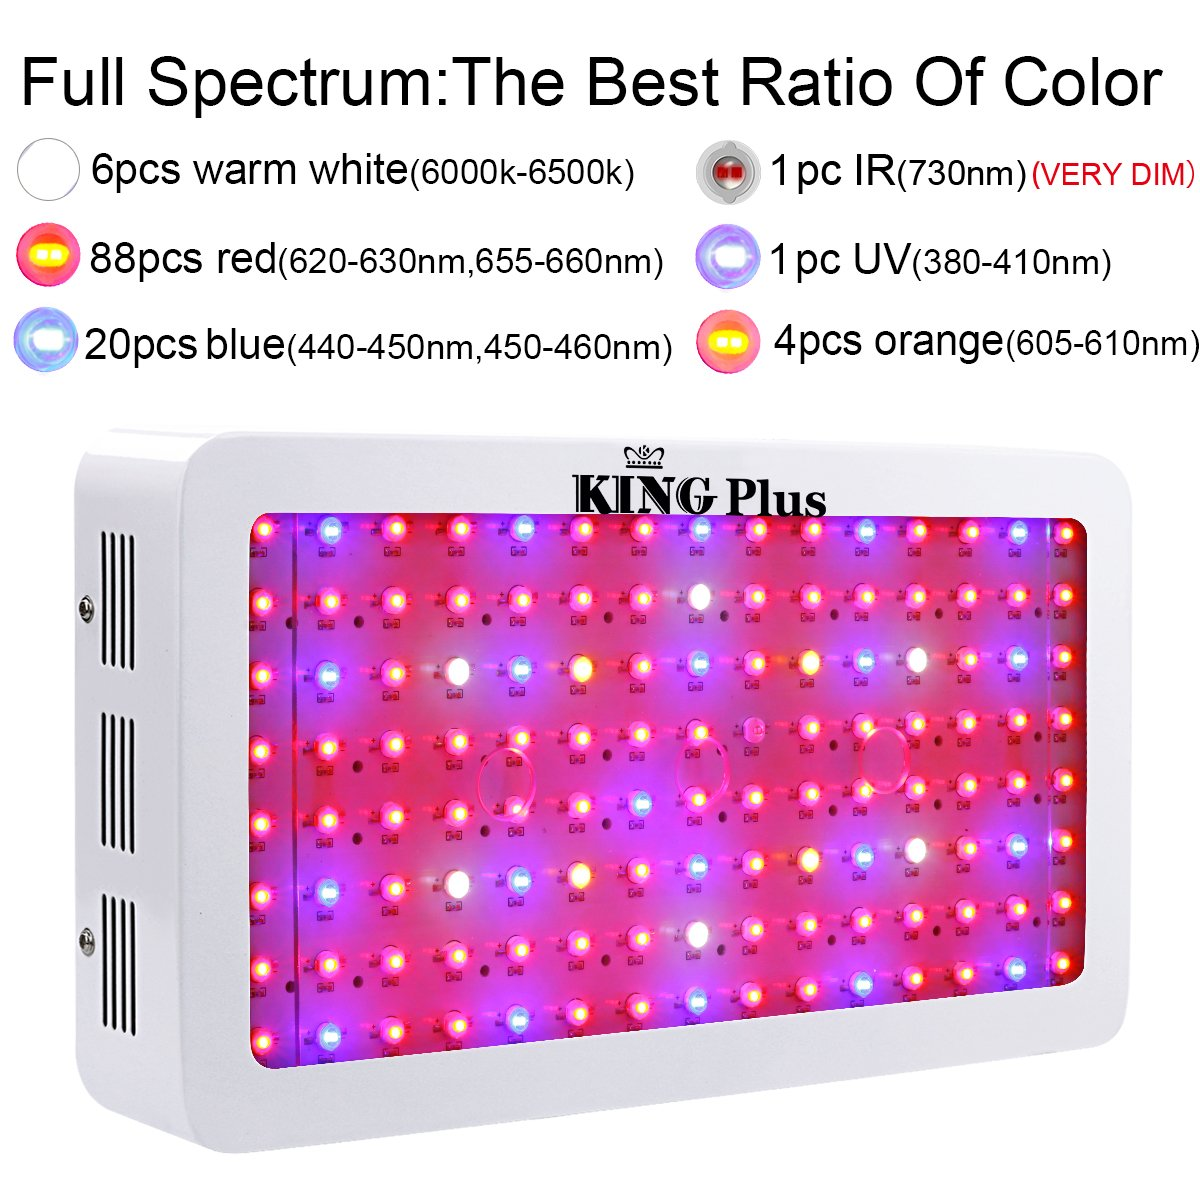 Amazon king plus 1200w led grow light double chips full amazon king plus 1200w led grow light double chips full spectrum with uv and ir for greenhouse indoor plant veg and flower garden outdoor parisarafo Choice Image